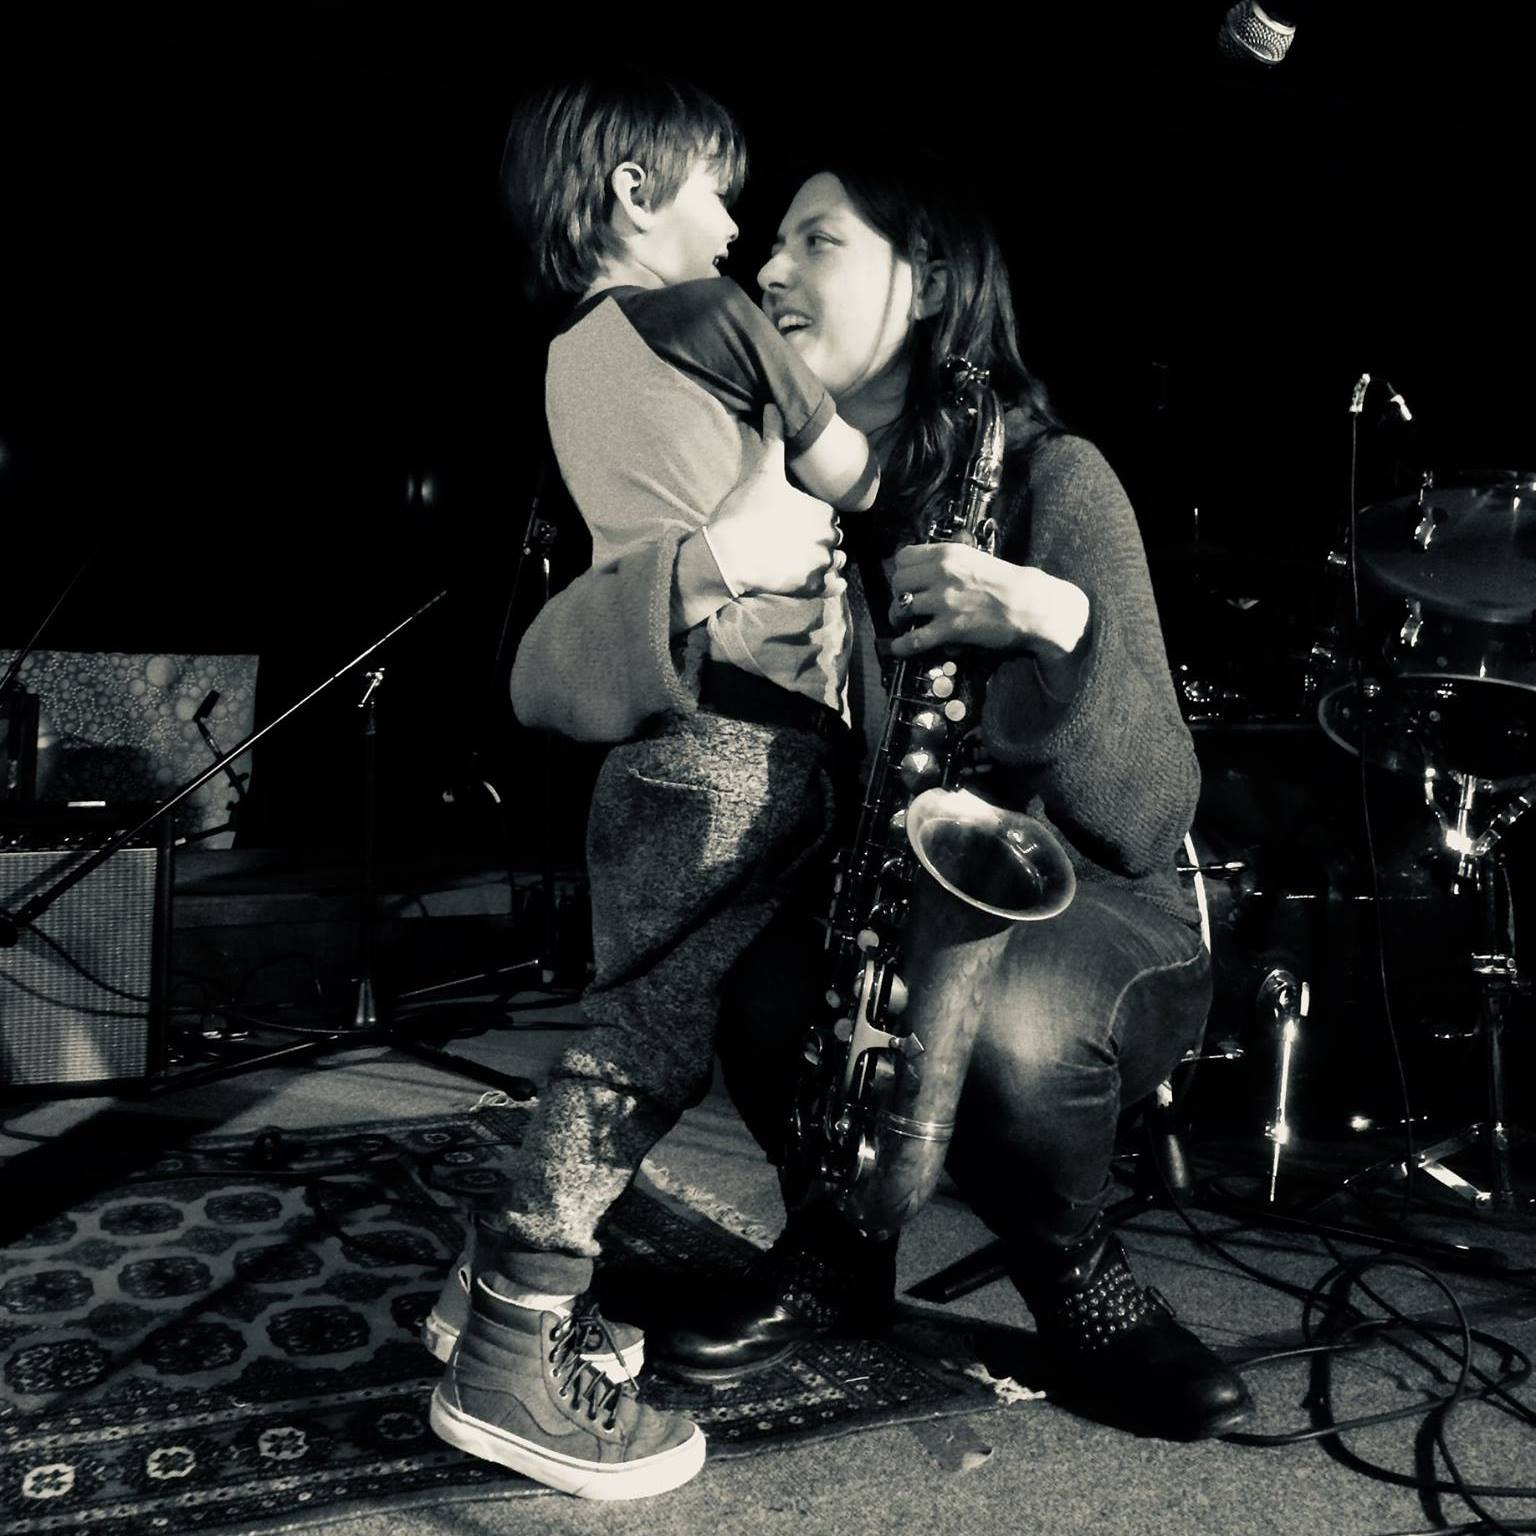 Copyright 2018 Photo by Riyen Roots, Cristal Rose Fox and Son.